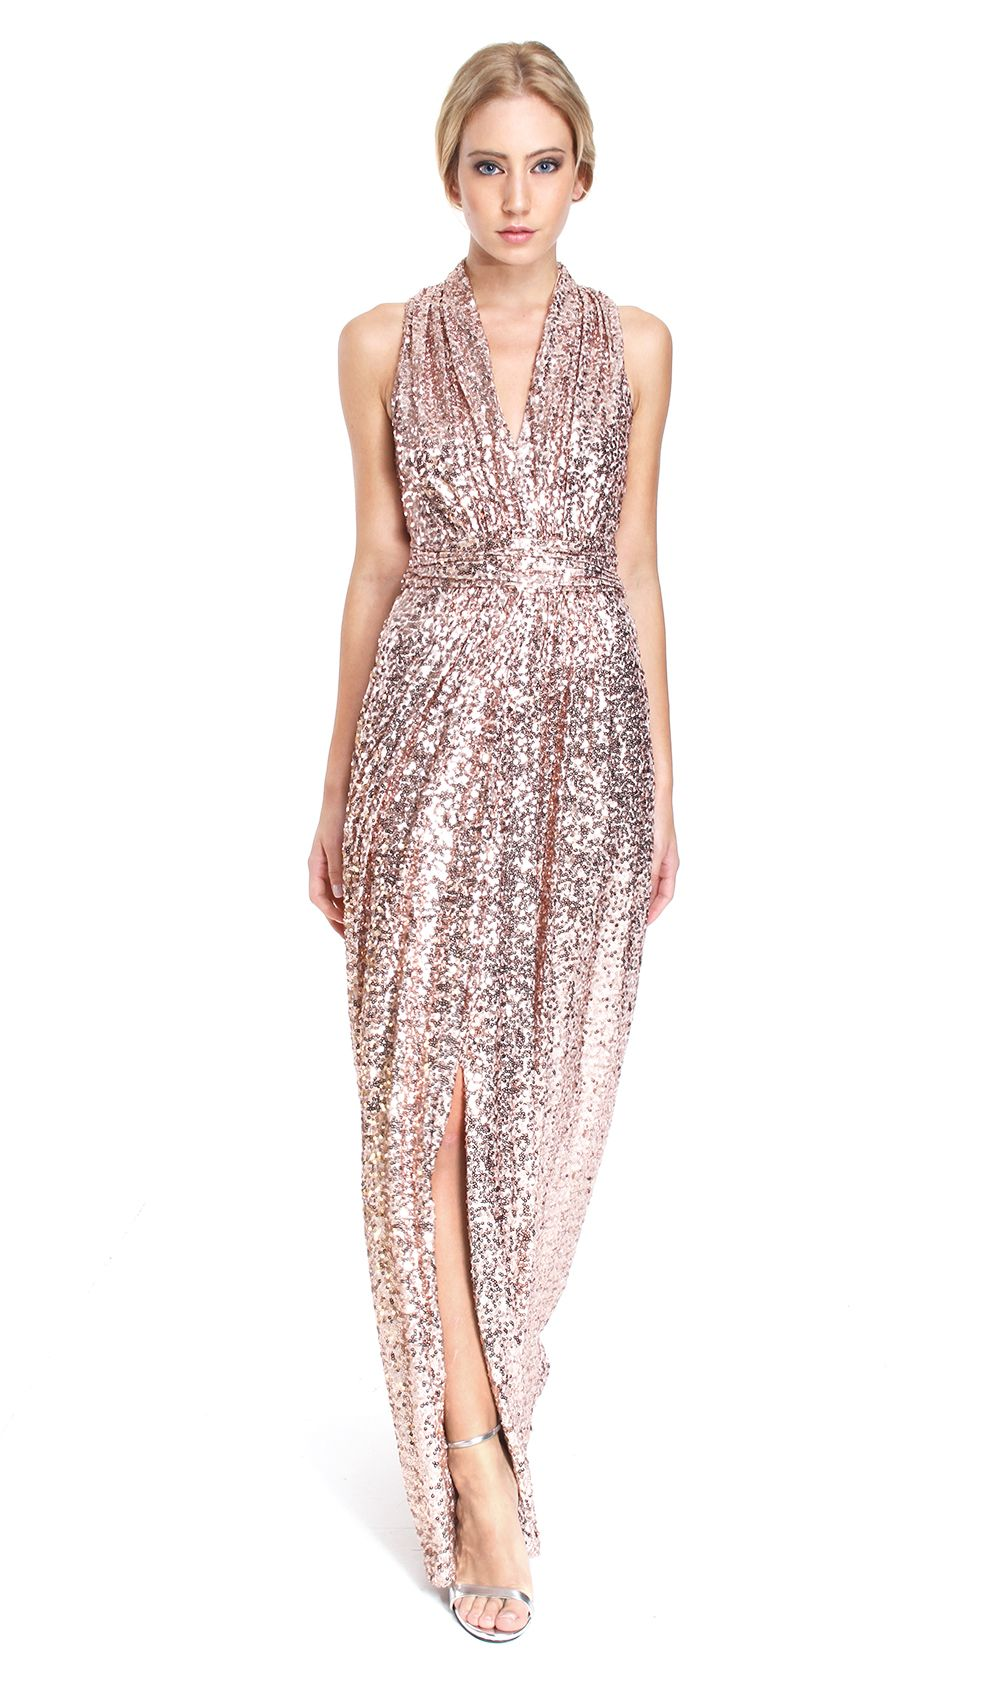 Pink sequined gown hire badgley mischka front pink closet pink sequined gown hire badgley mischka front ombrellifo Choice Image